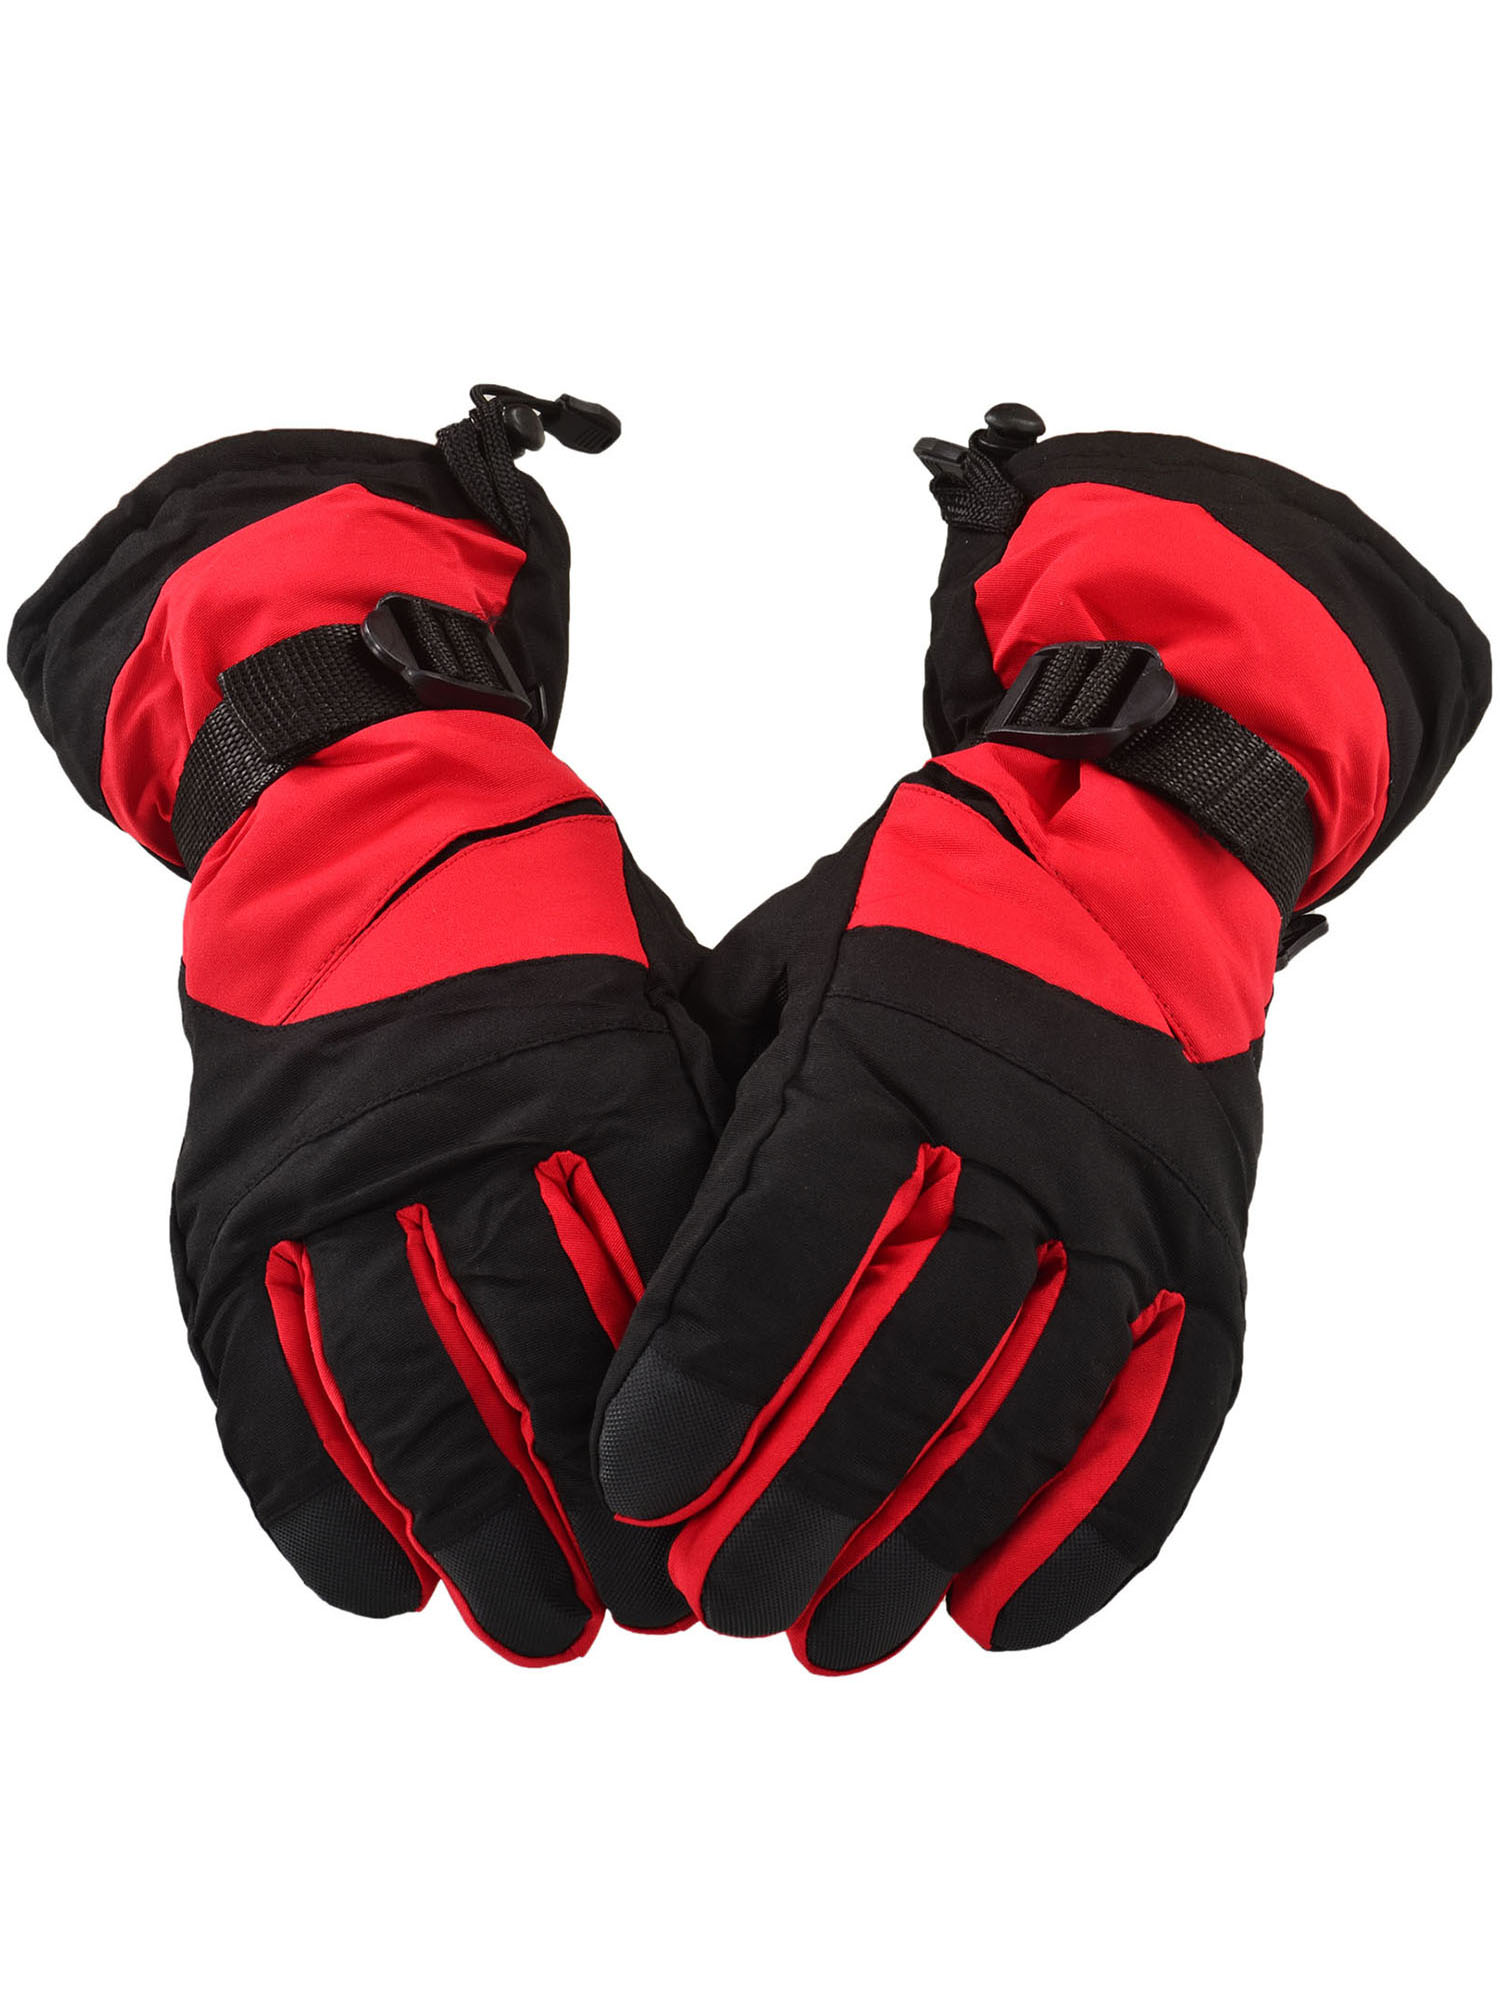 Winter Sportswear Thermal Insulated Adjustable Snowboard   Ski Gloves,Red Black by